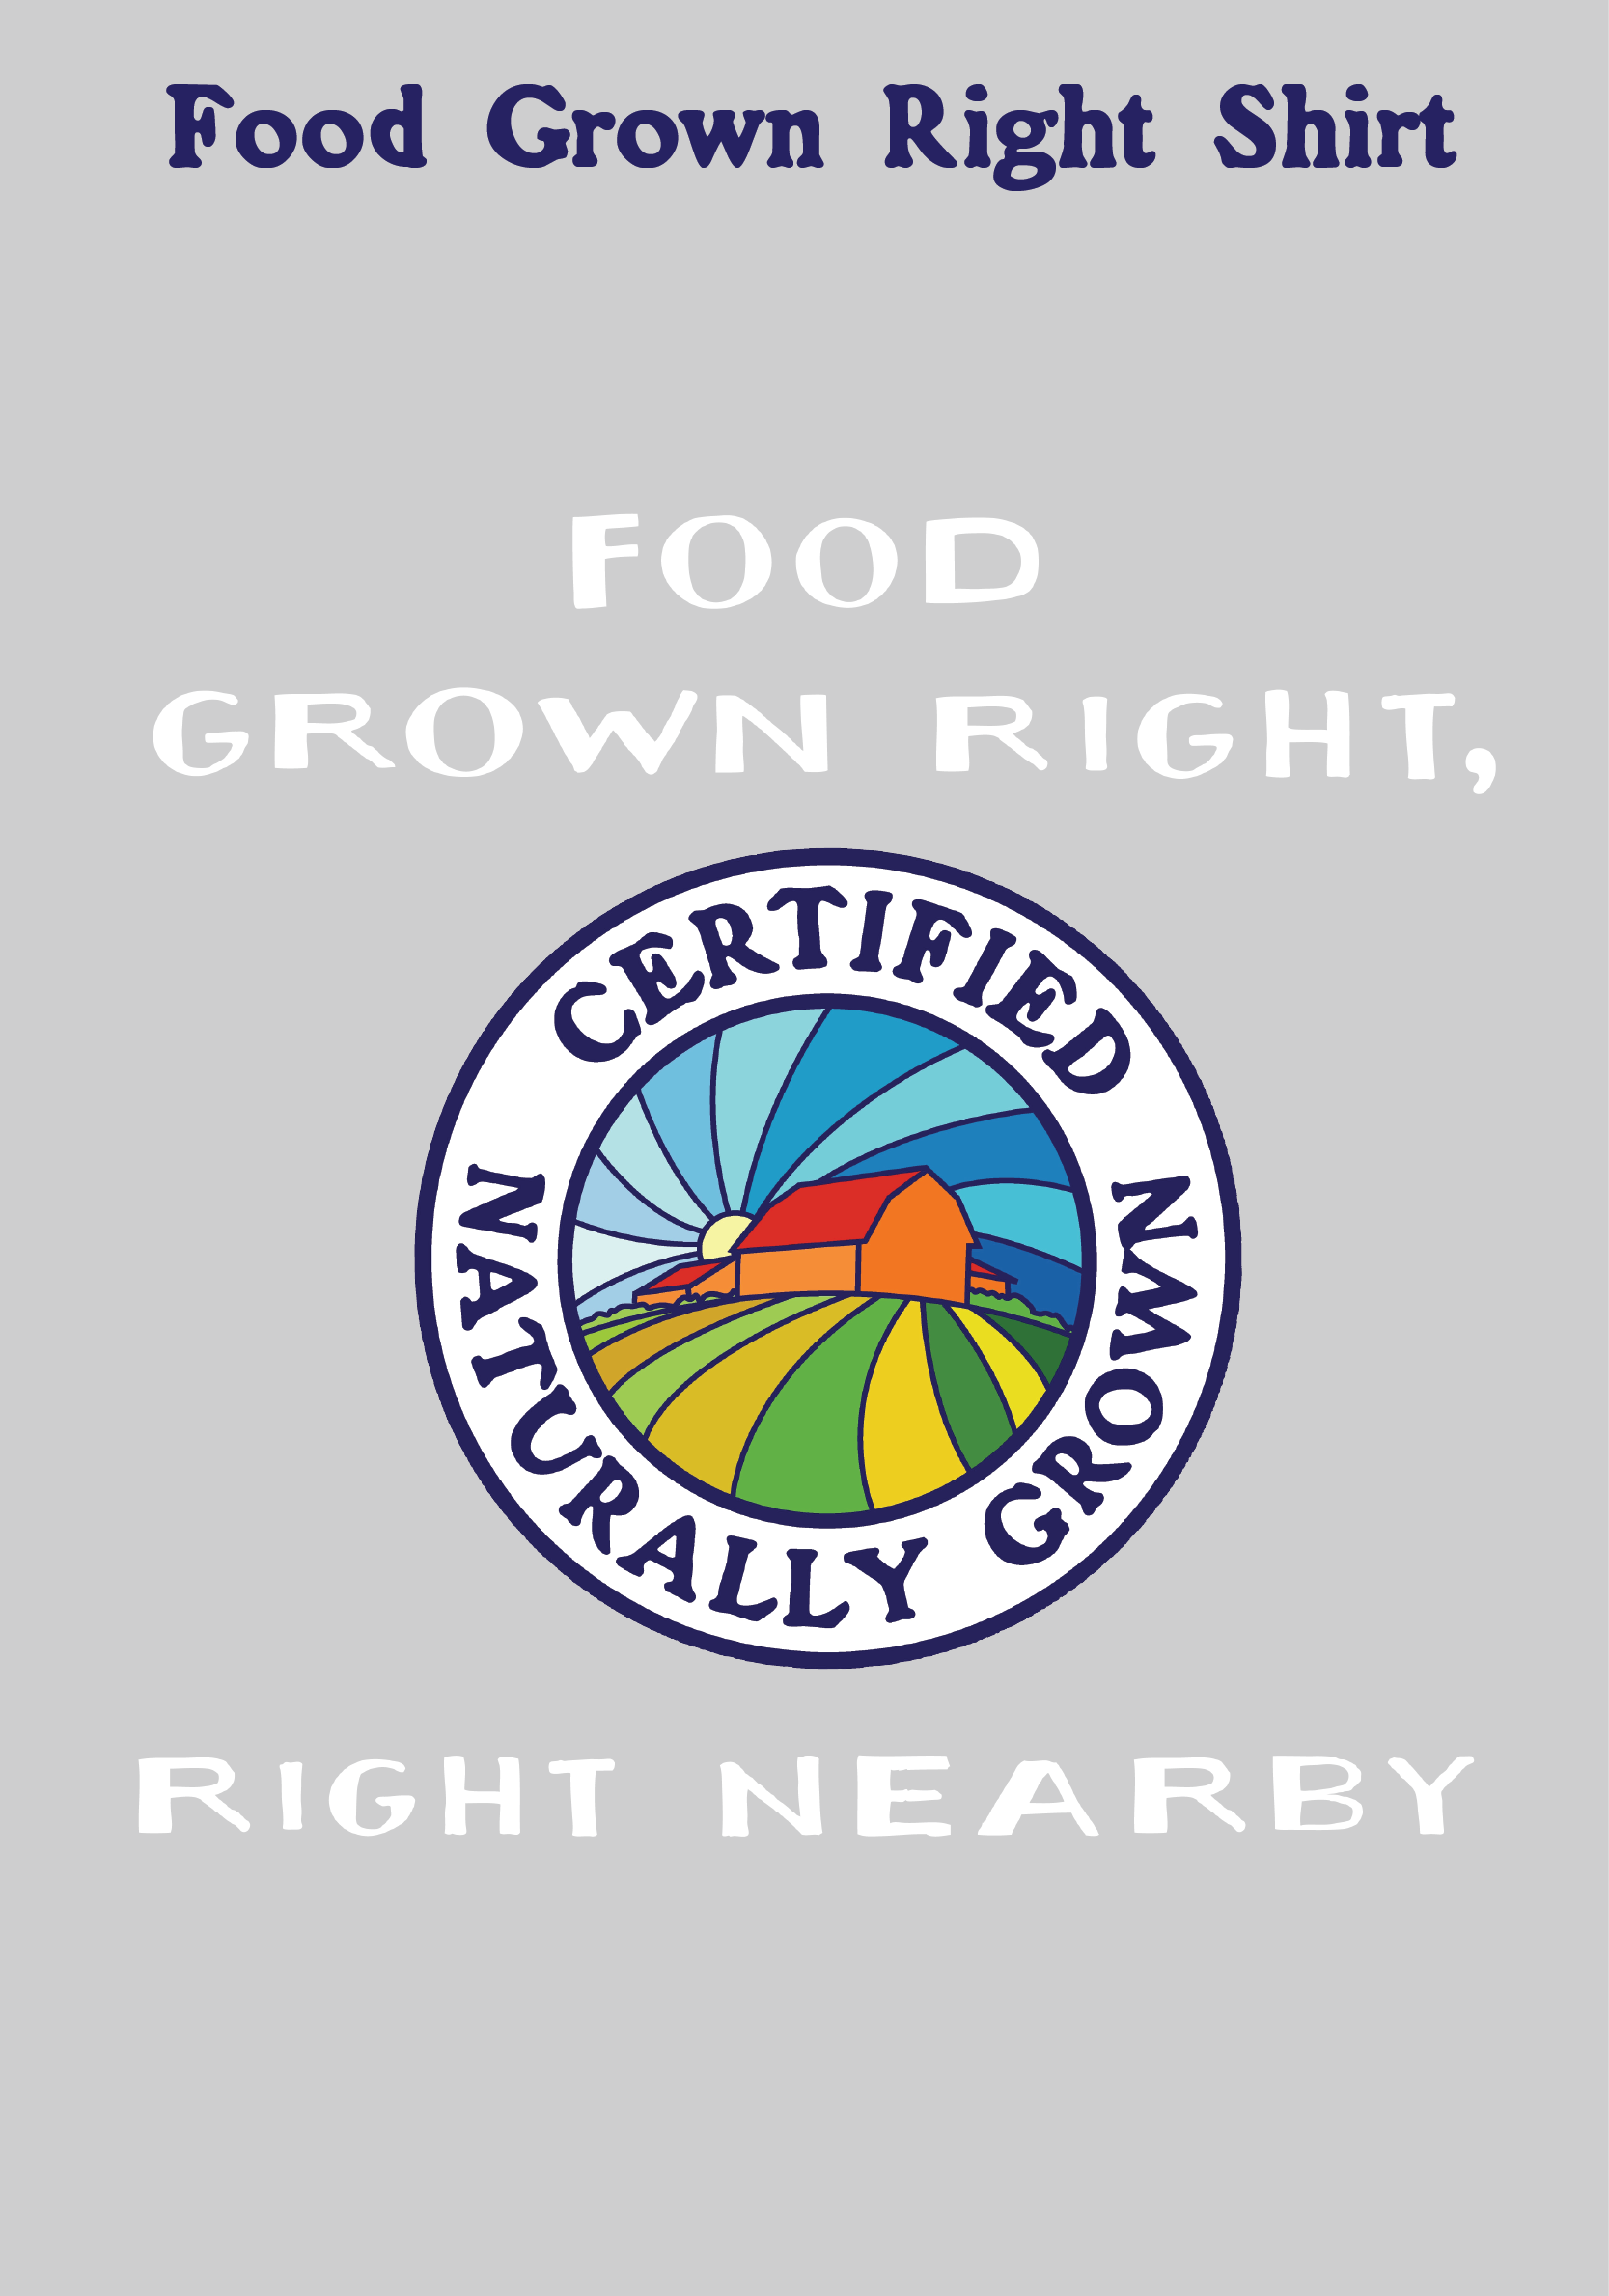 Food_Grown_Right-01.png